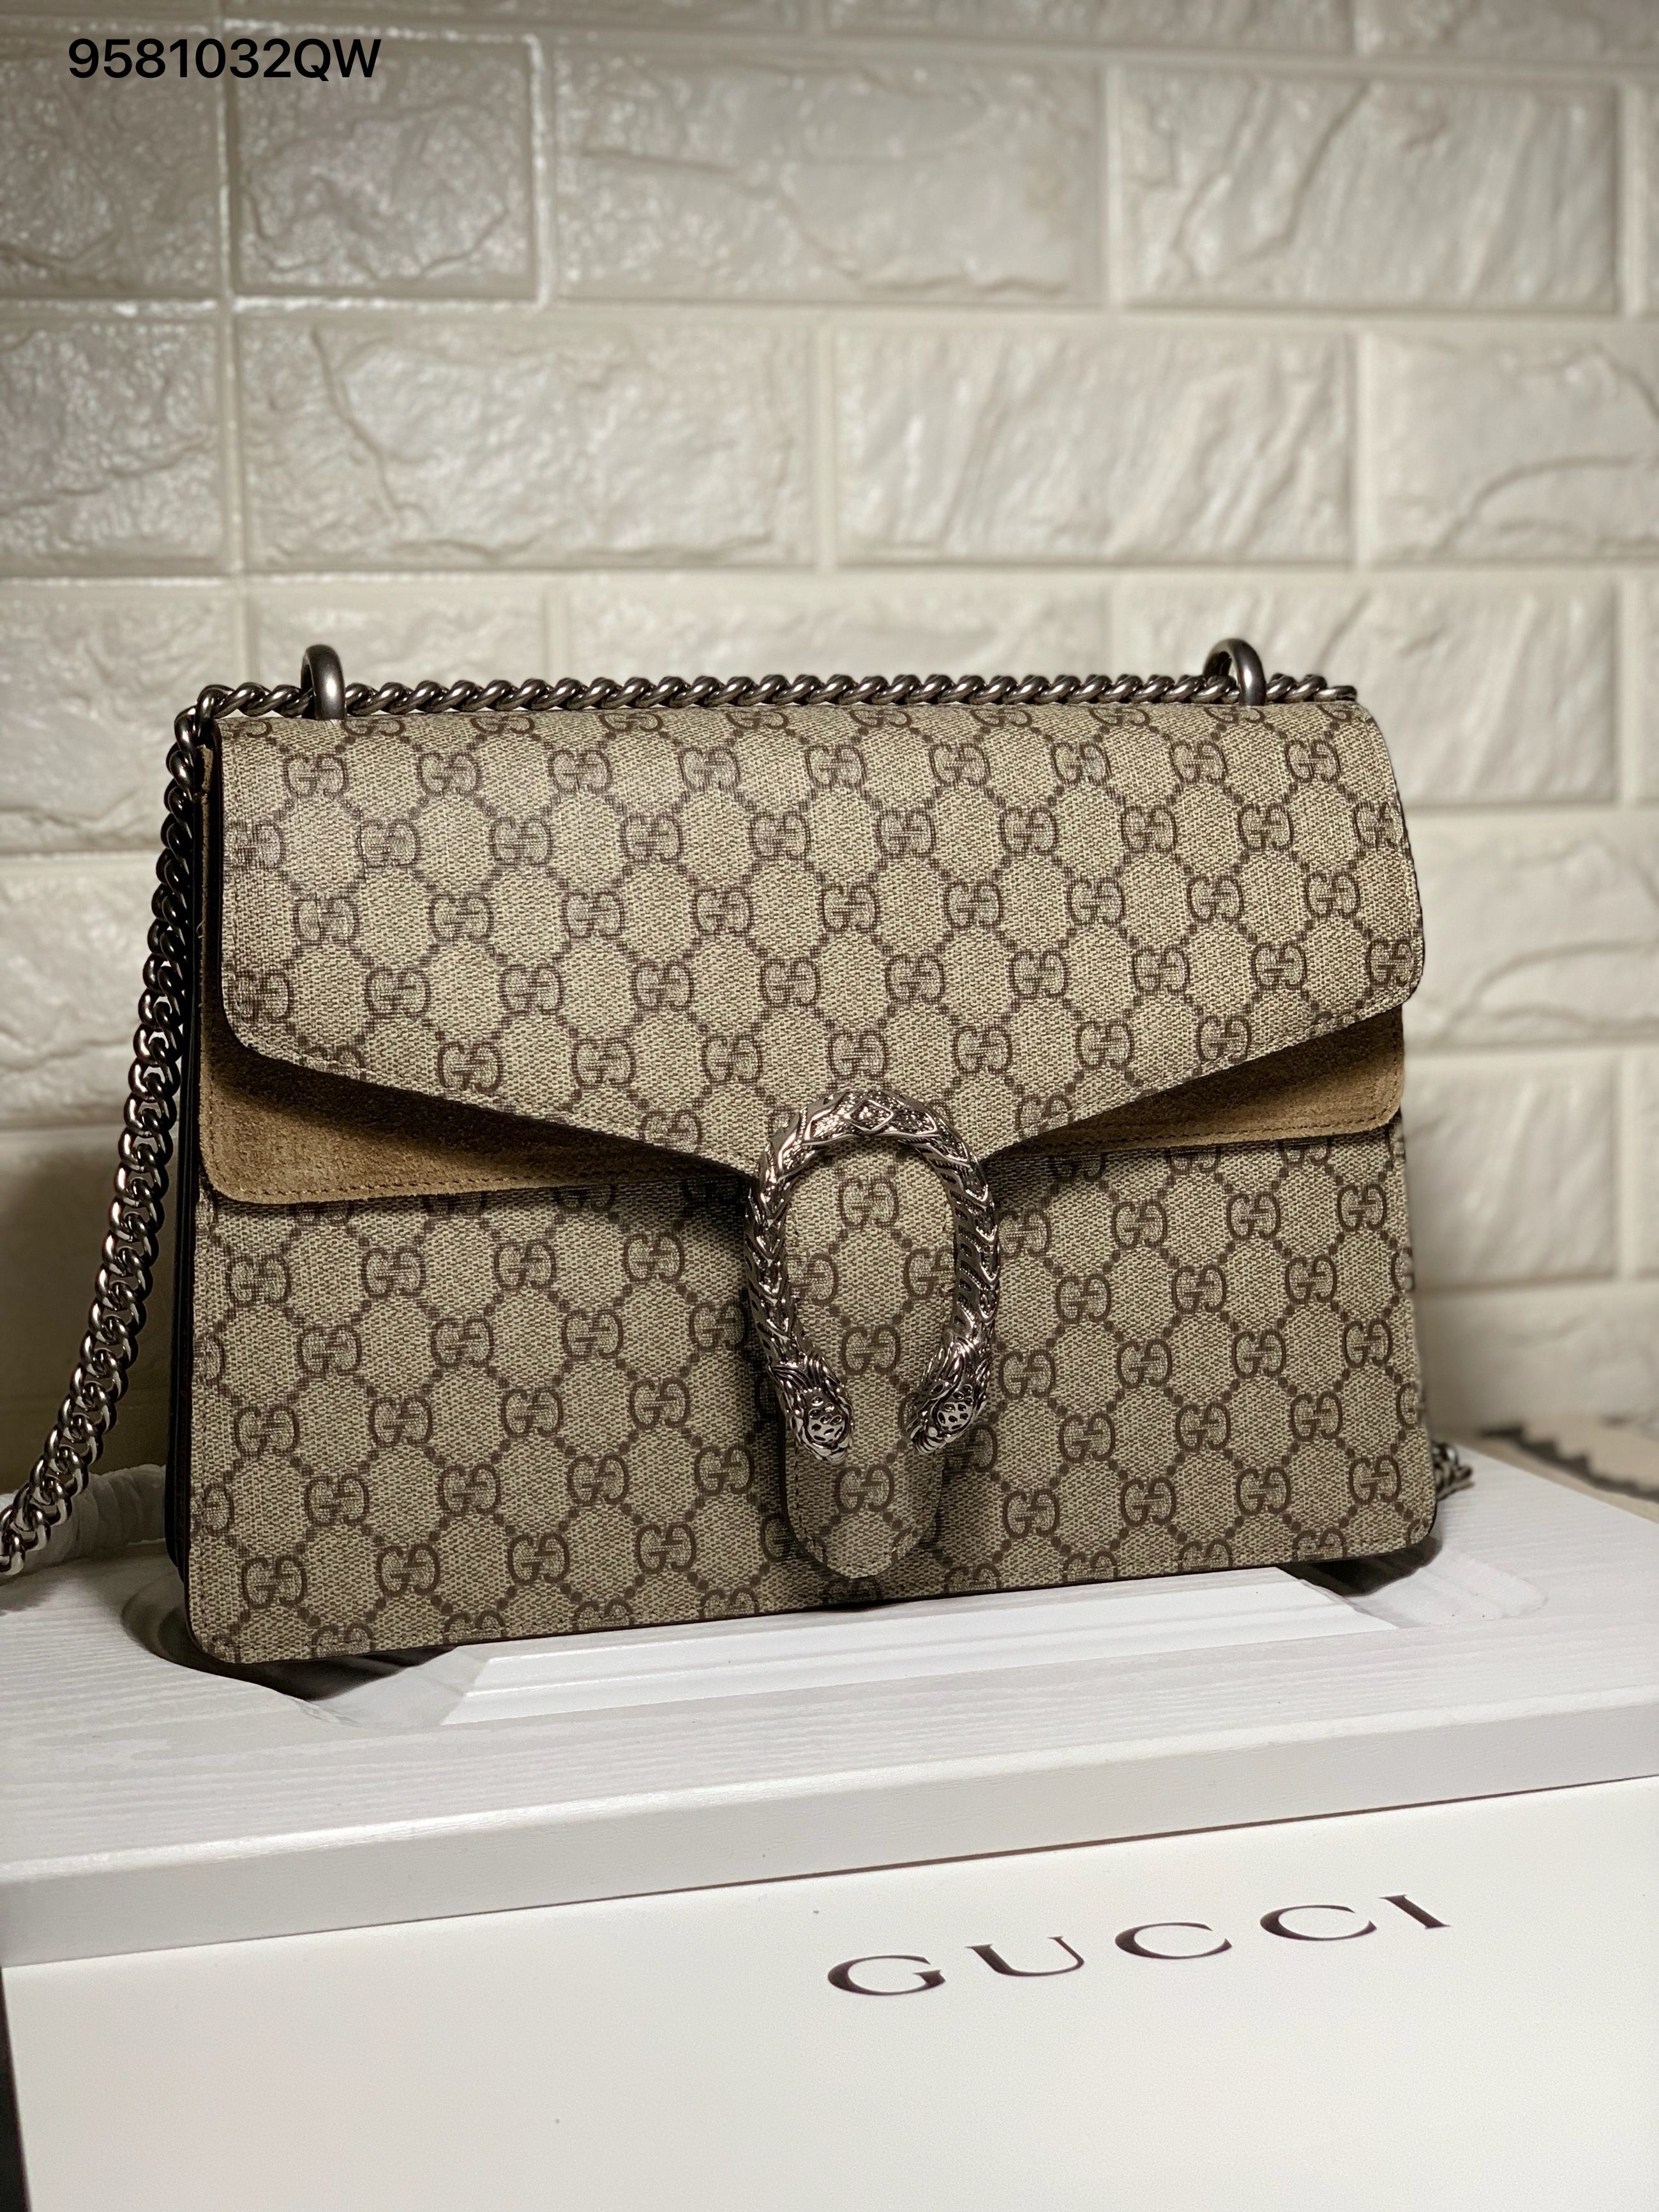 75dd94b95 Gucci Dionysus chain shoulder bag large 31cm nude | Gucci bags in ...